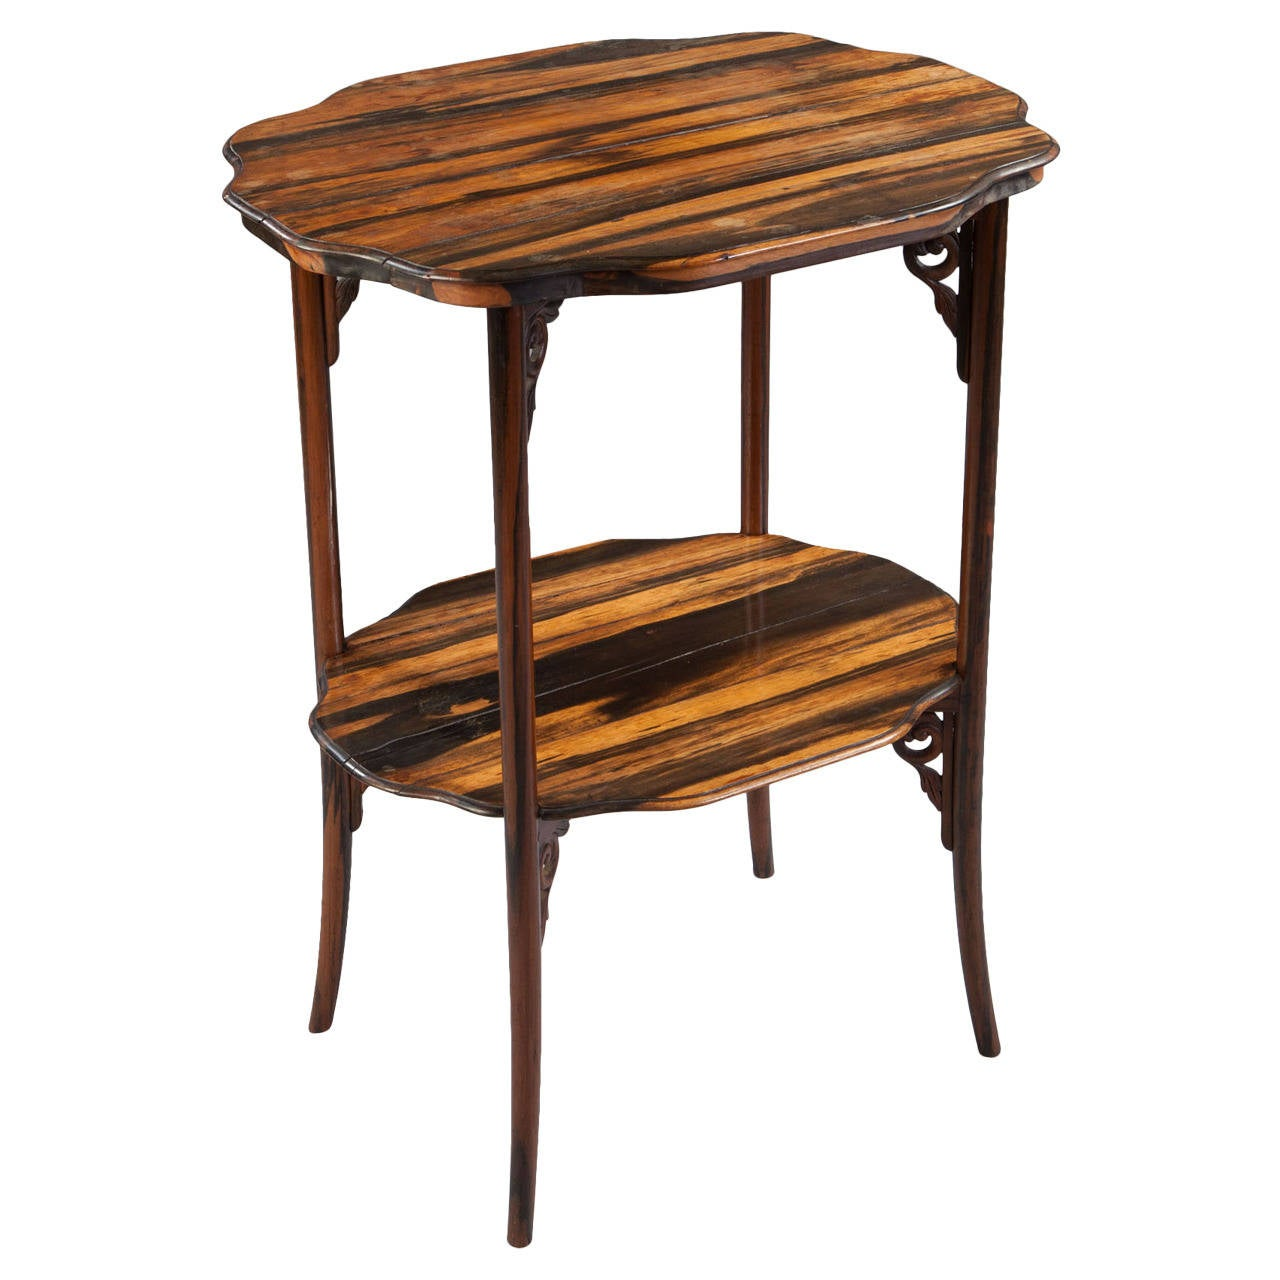 Calamander Wood Folding Campaign Table 1 - Calamander Wood Folding Campaign Table For Sale At 1stdibs